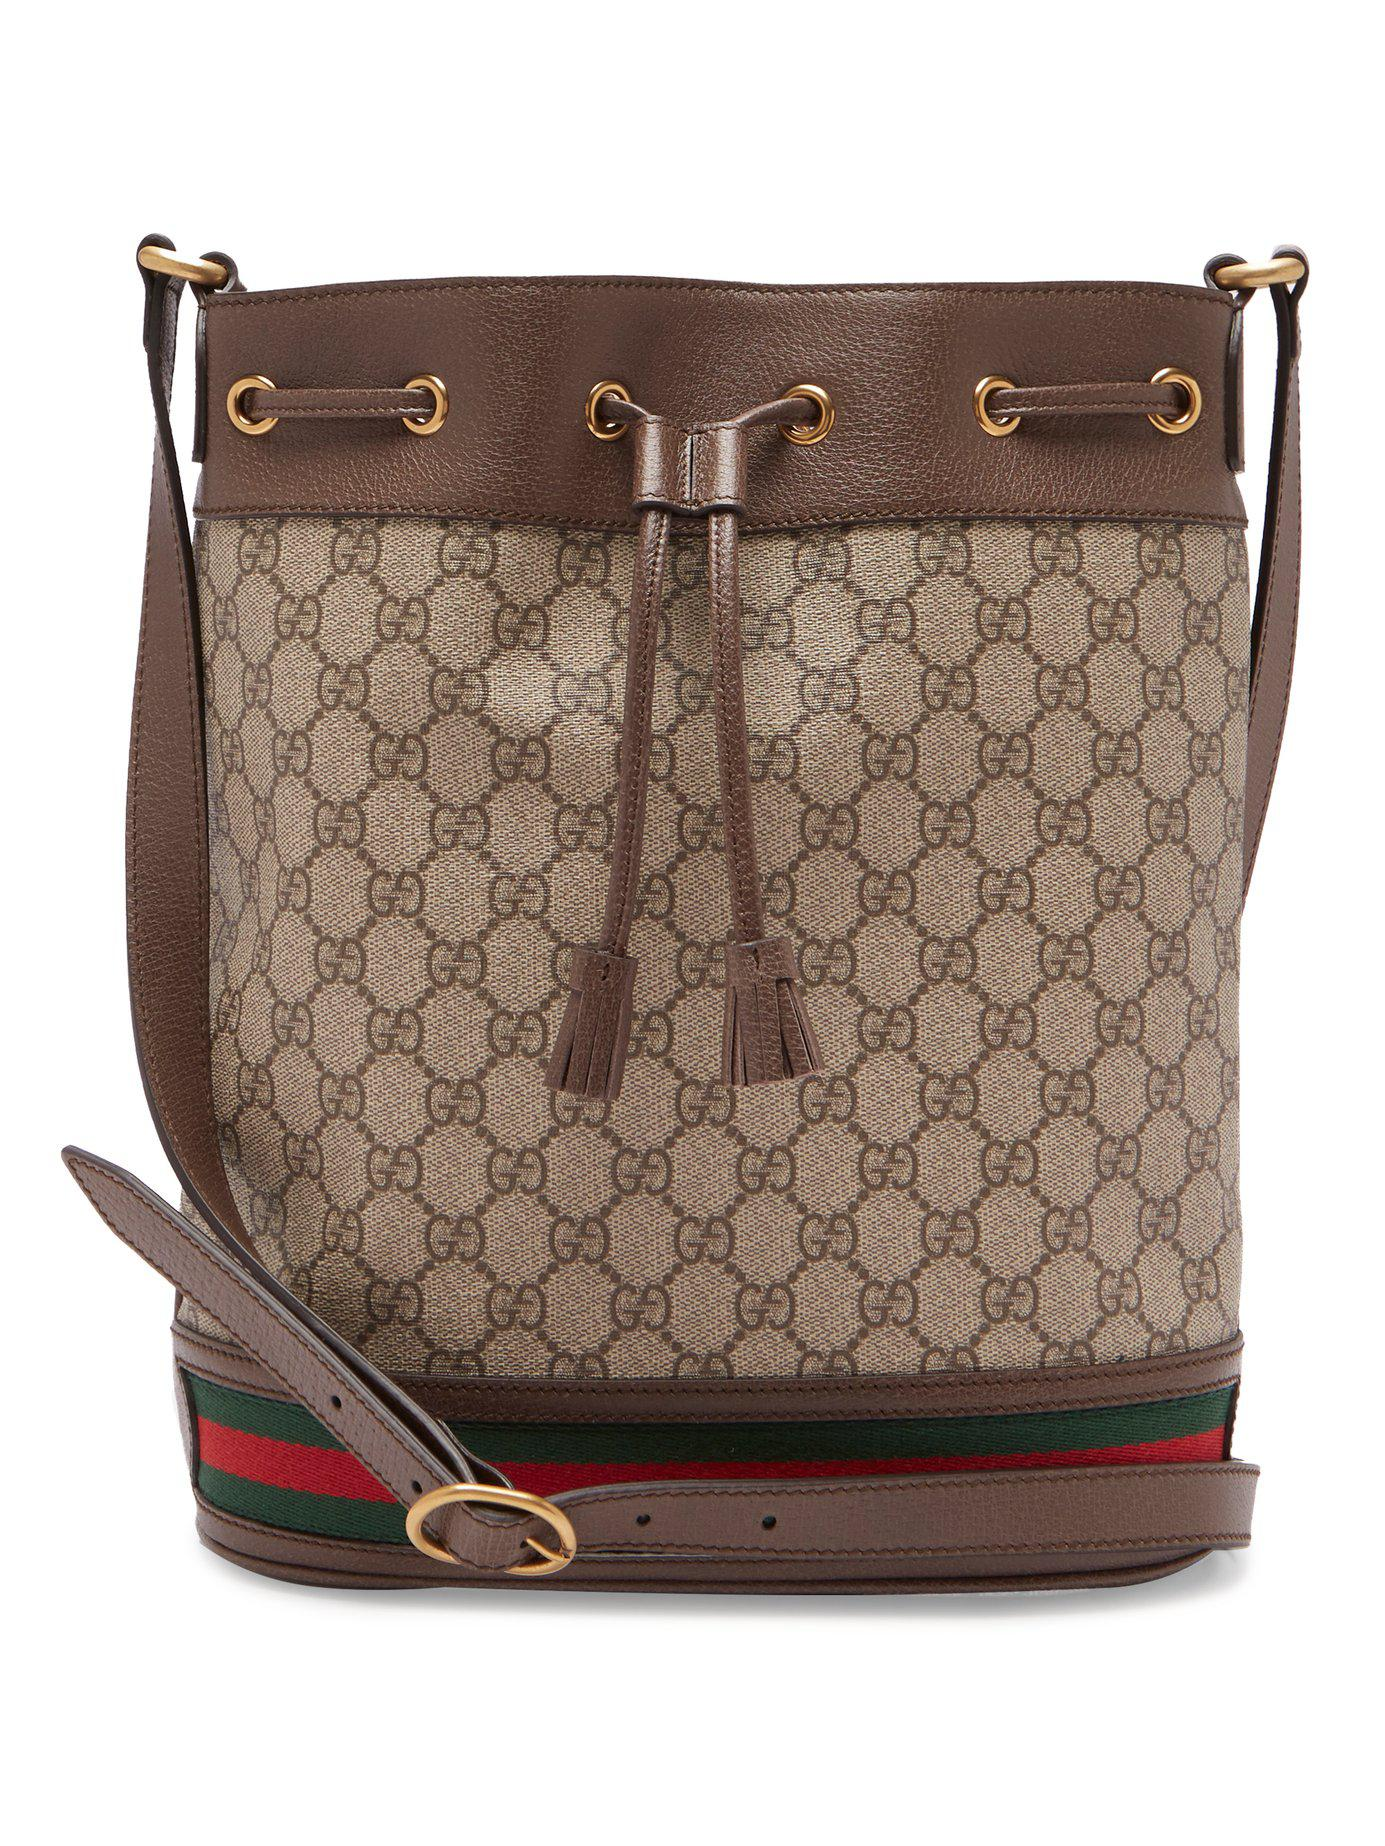 9fbbba3948a1 Gucci Ophidia Gg Supreme Leather Bucket Bag in Brown - Lyst